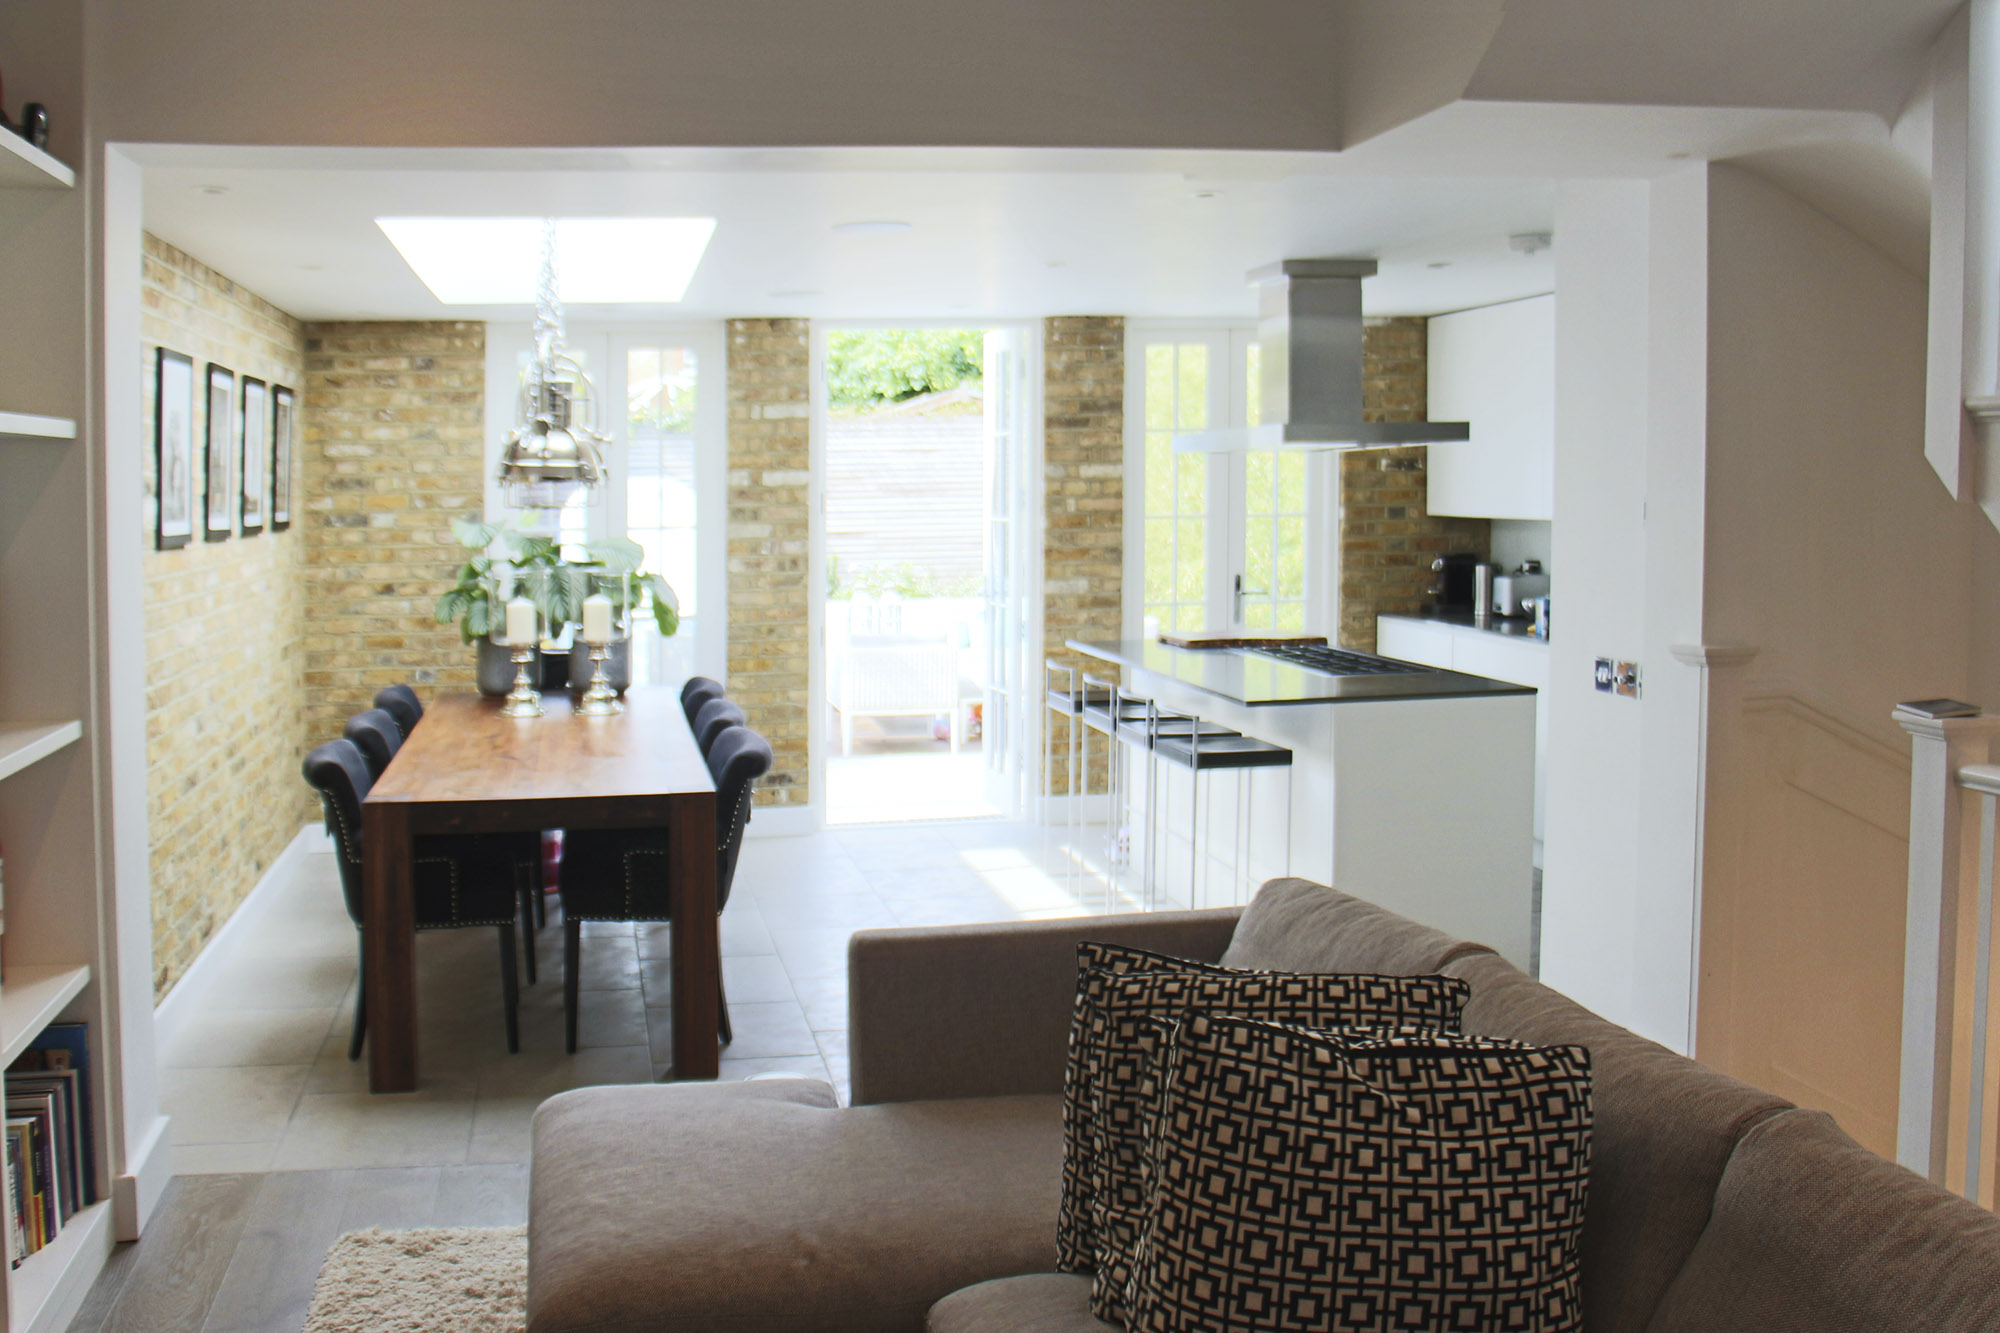 - marchini-architecture.com, - Putney, - loft extension, - basement extension, - rear extension, - front extension, - contemporary cottage, - interior brick wall, - open plan living dining, Miele kitchen